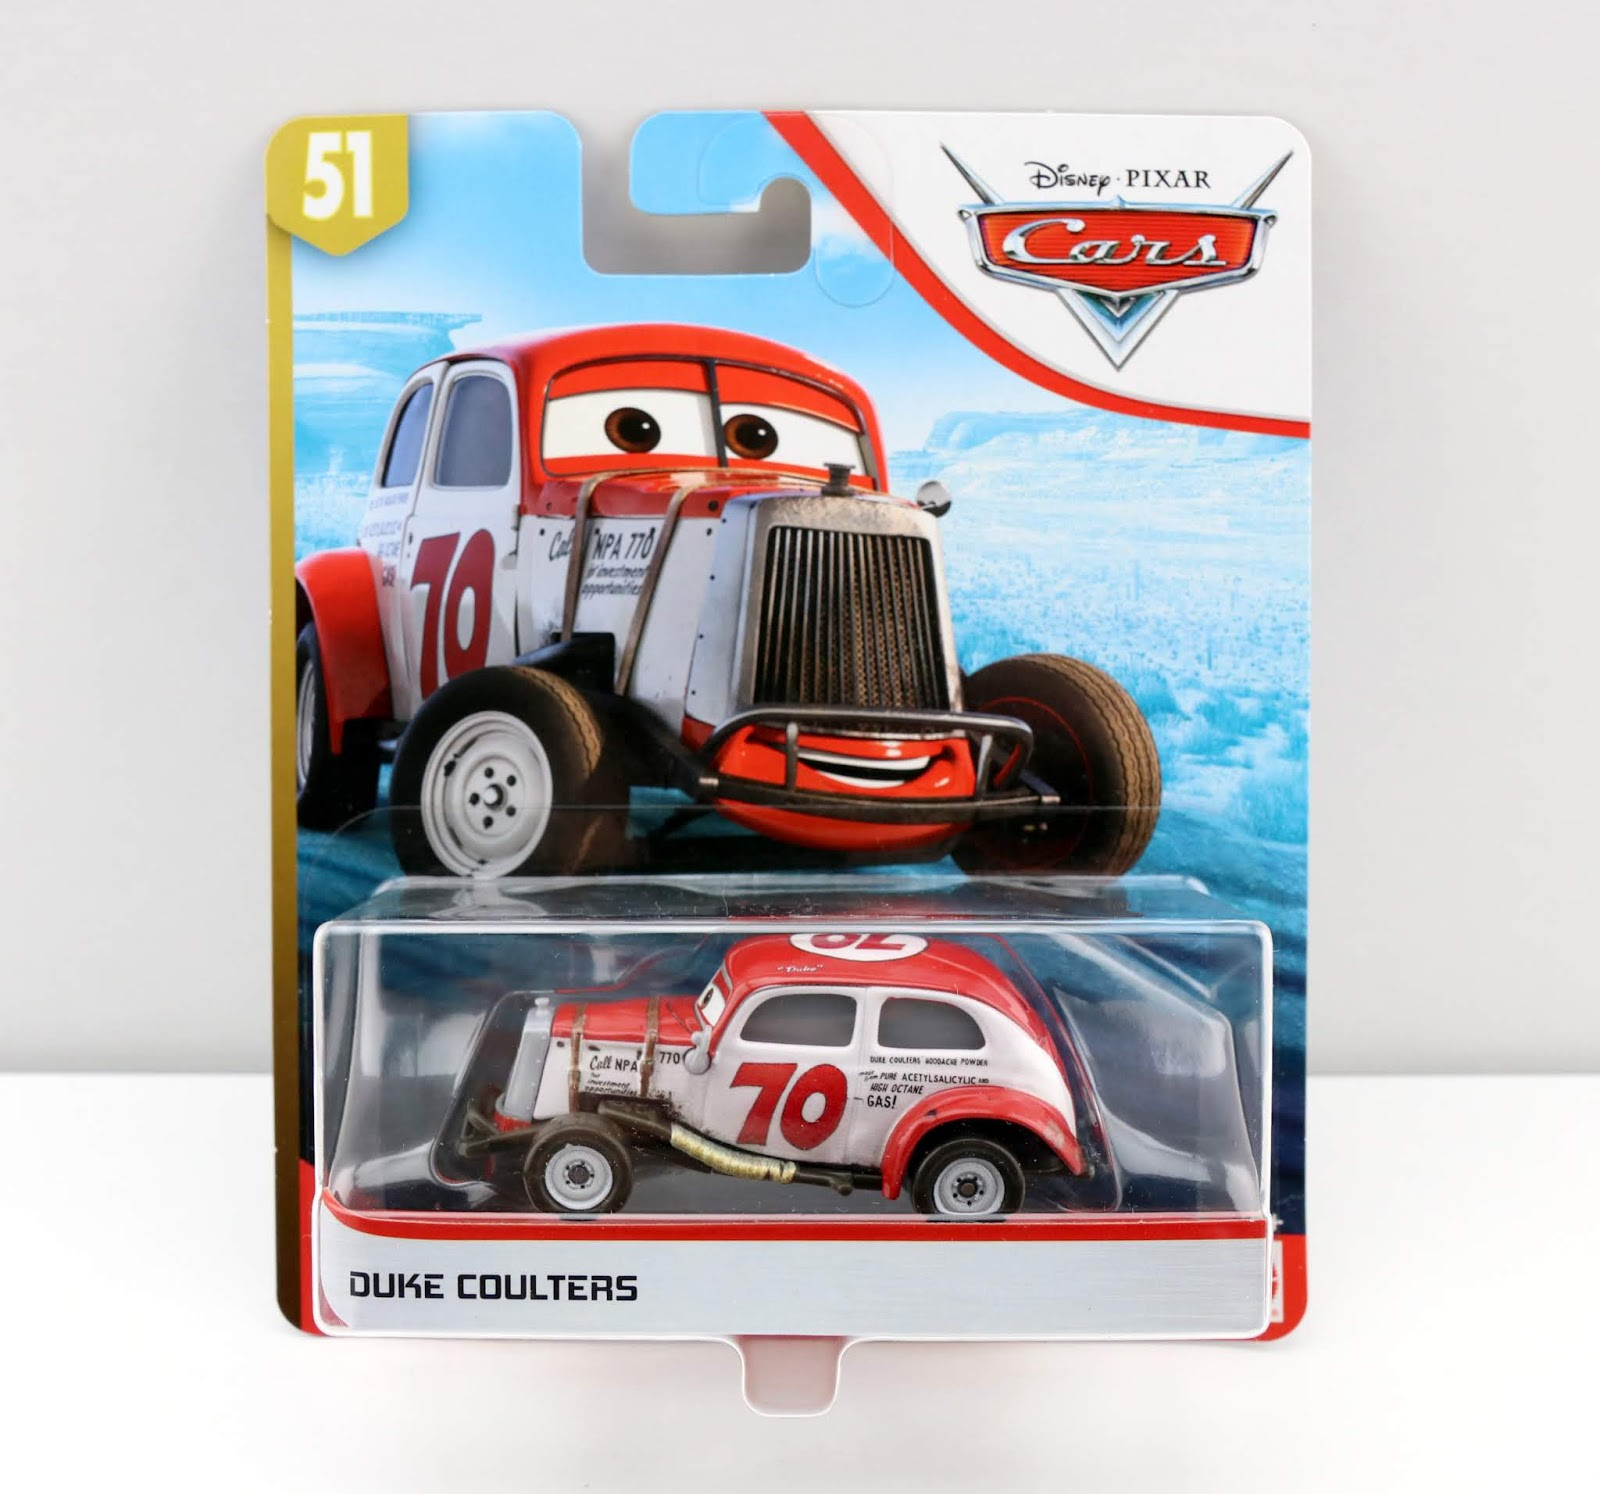 Cars 3 Duke Coulters diecast